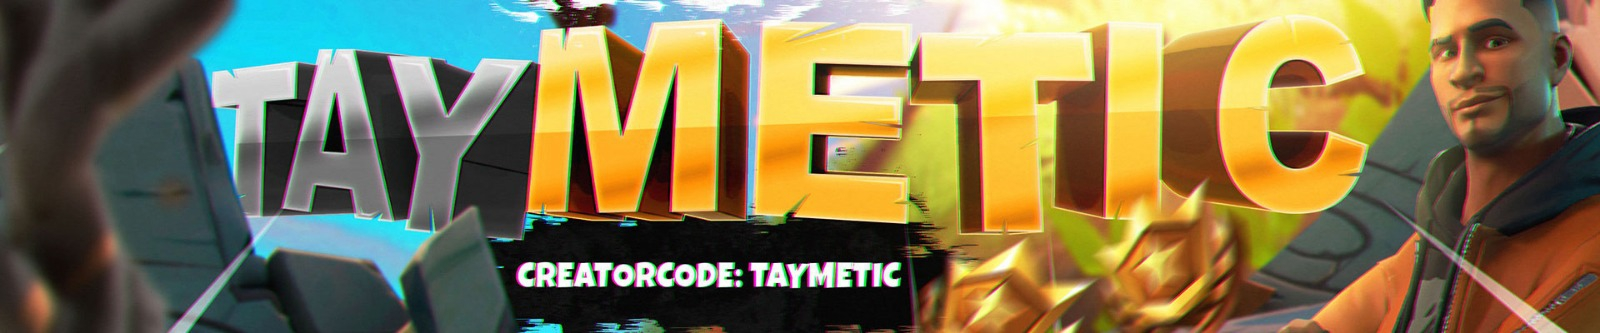 Taymetic